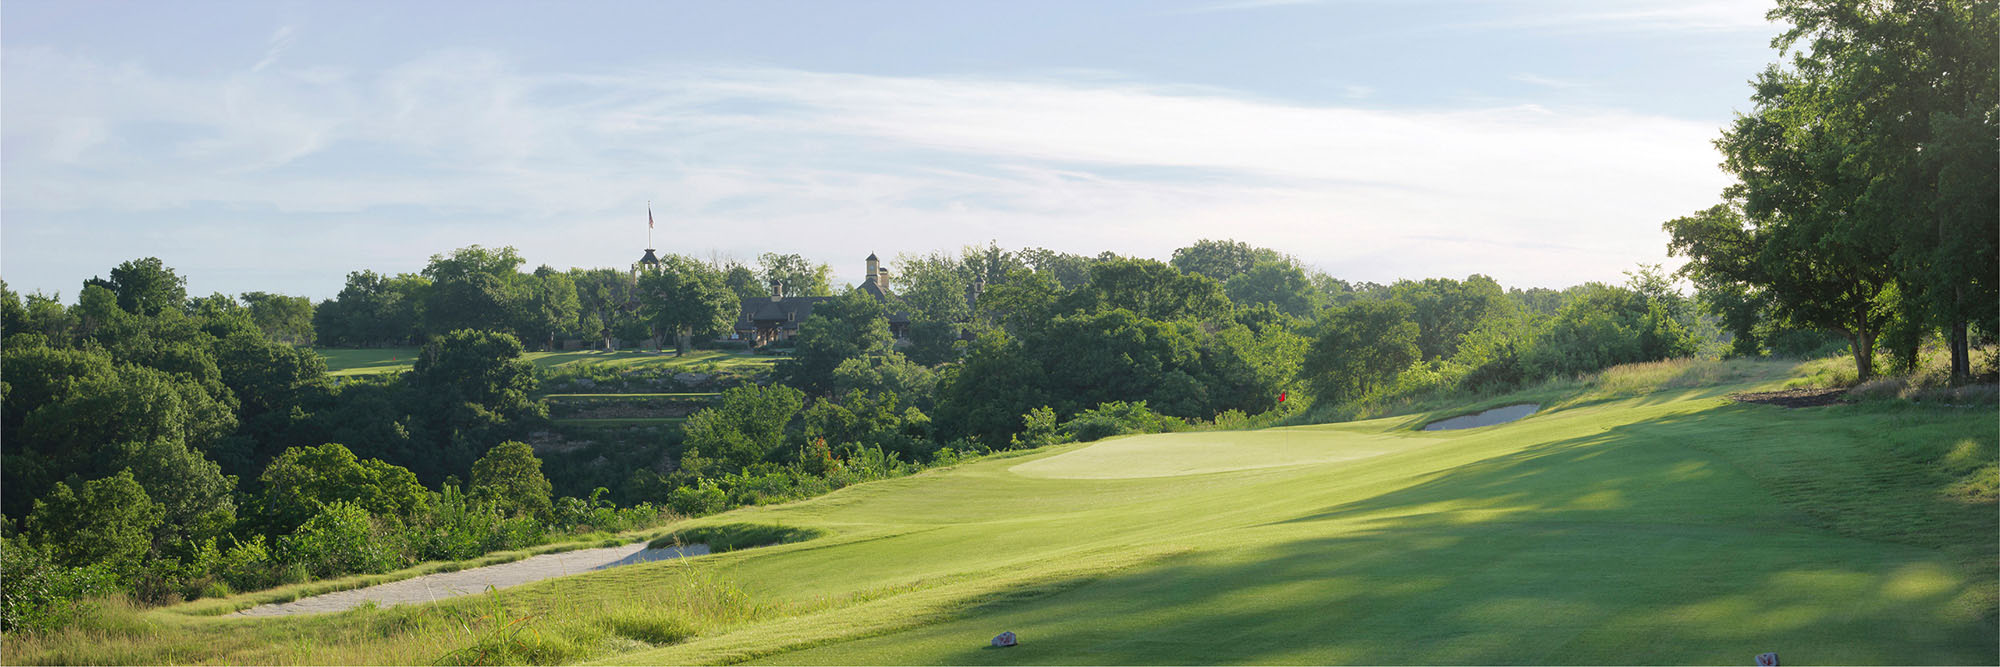 Golf Course Image - Patriot No. 17